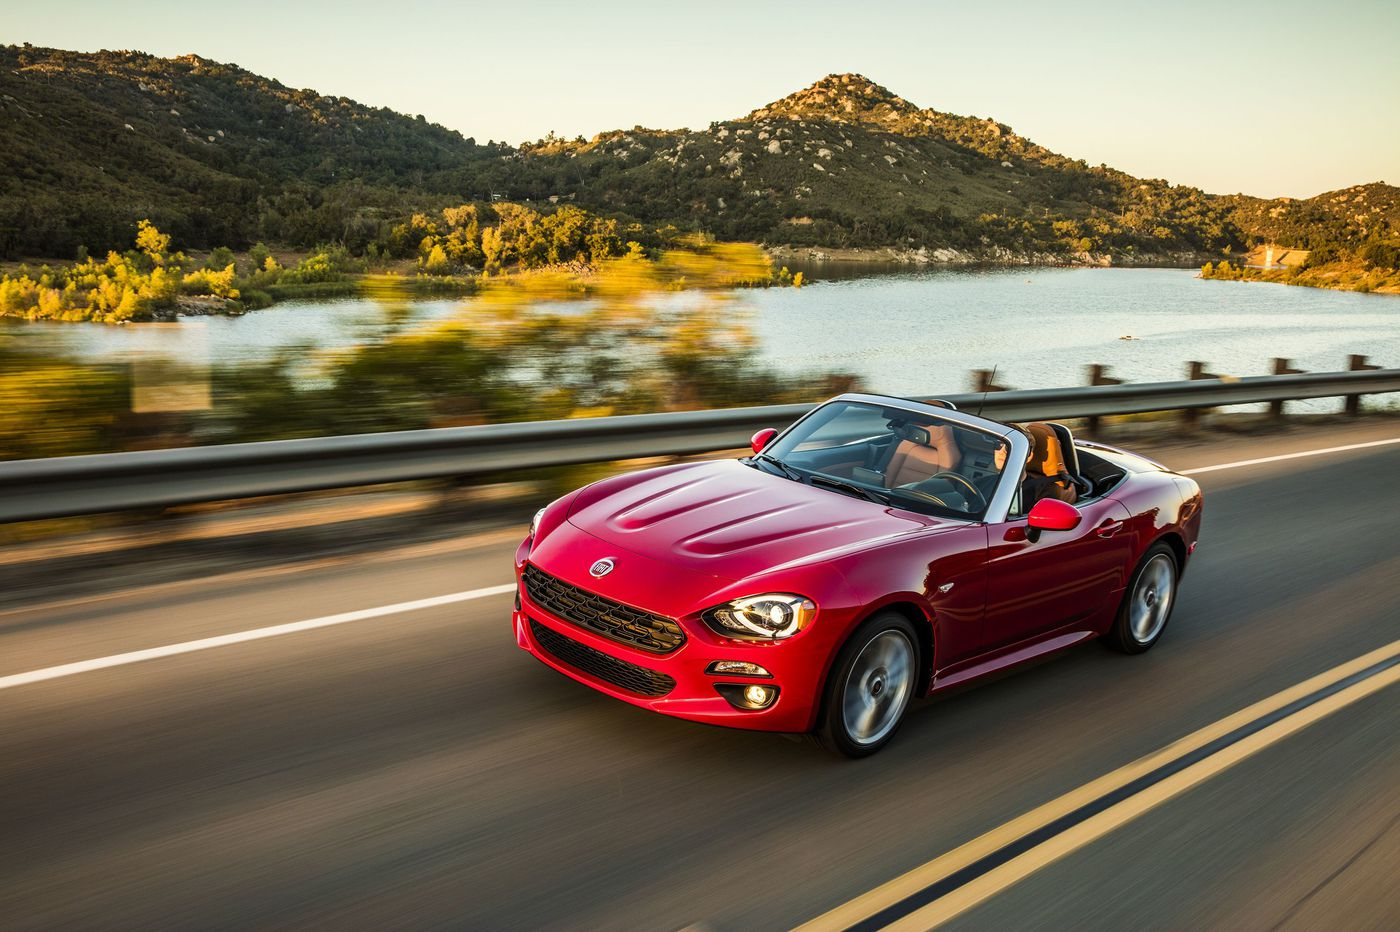 2019 Fiat 124 Spider Abarth makes drivers want to stretch summer